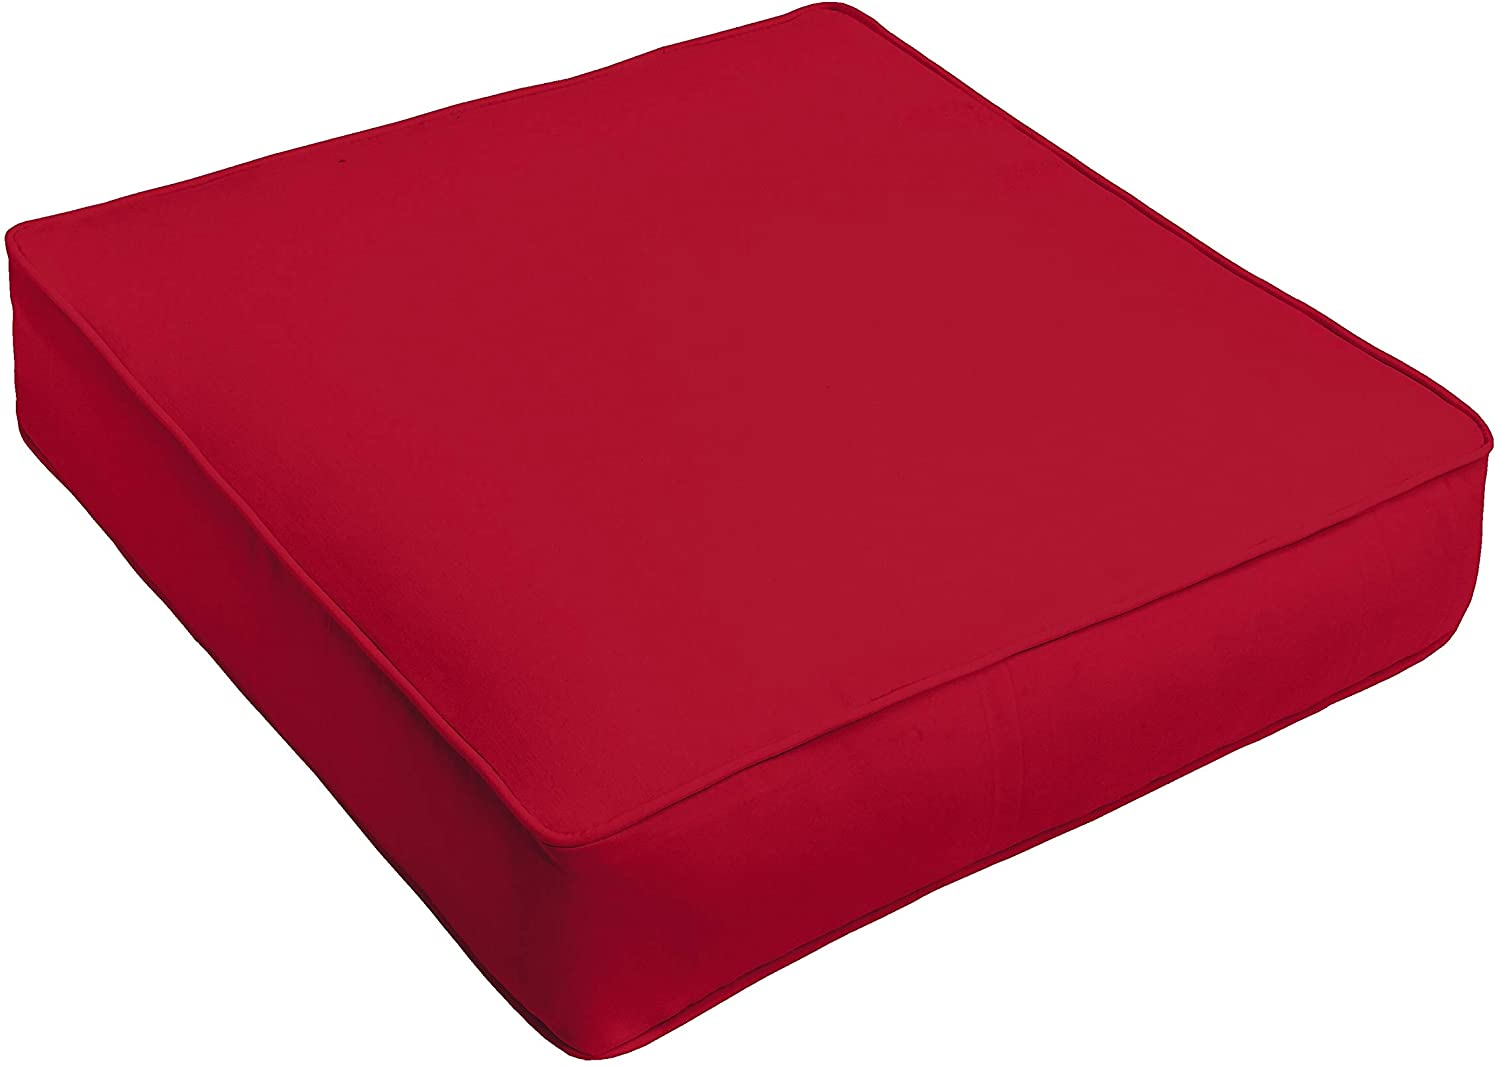 Indoor/Outdoor 22 5 Inch Square Corded Cushion Red Solid Modern Contemporary Traditional Transitional Polyester Fade Resistant Made USA Uv Water